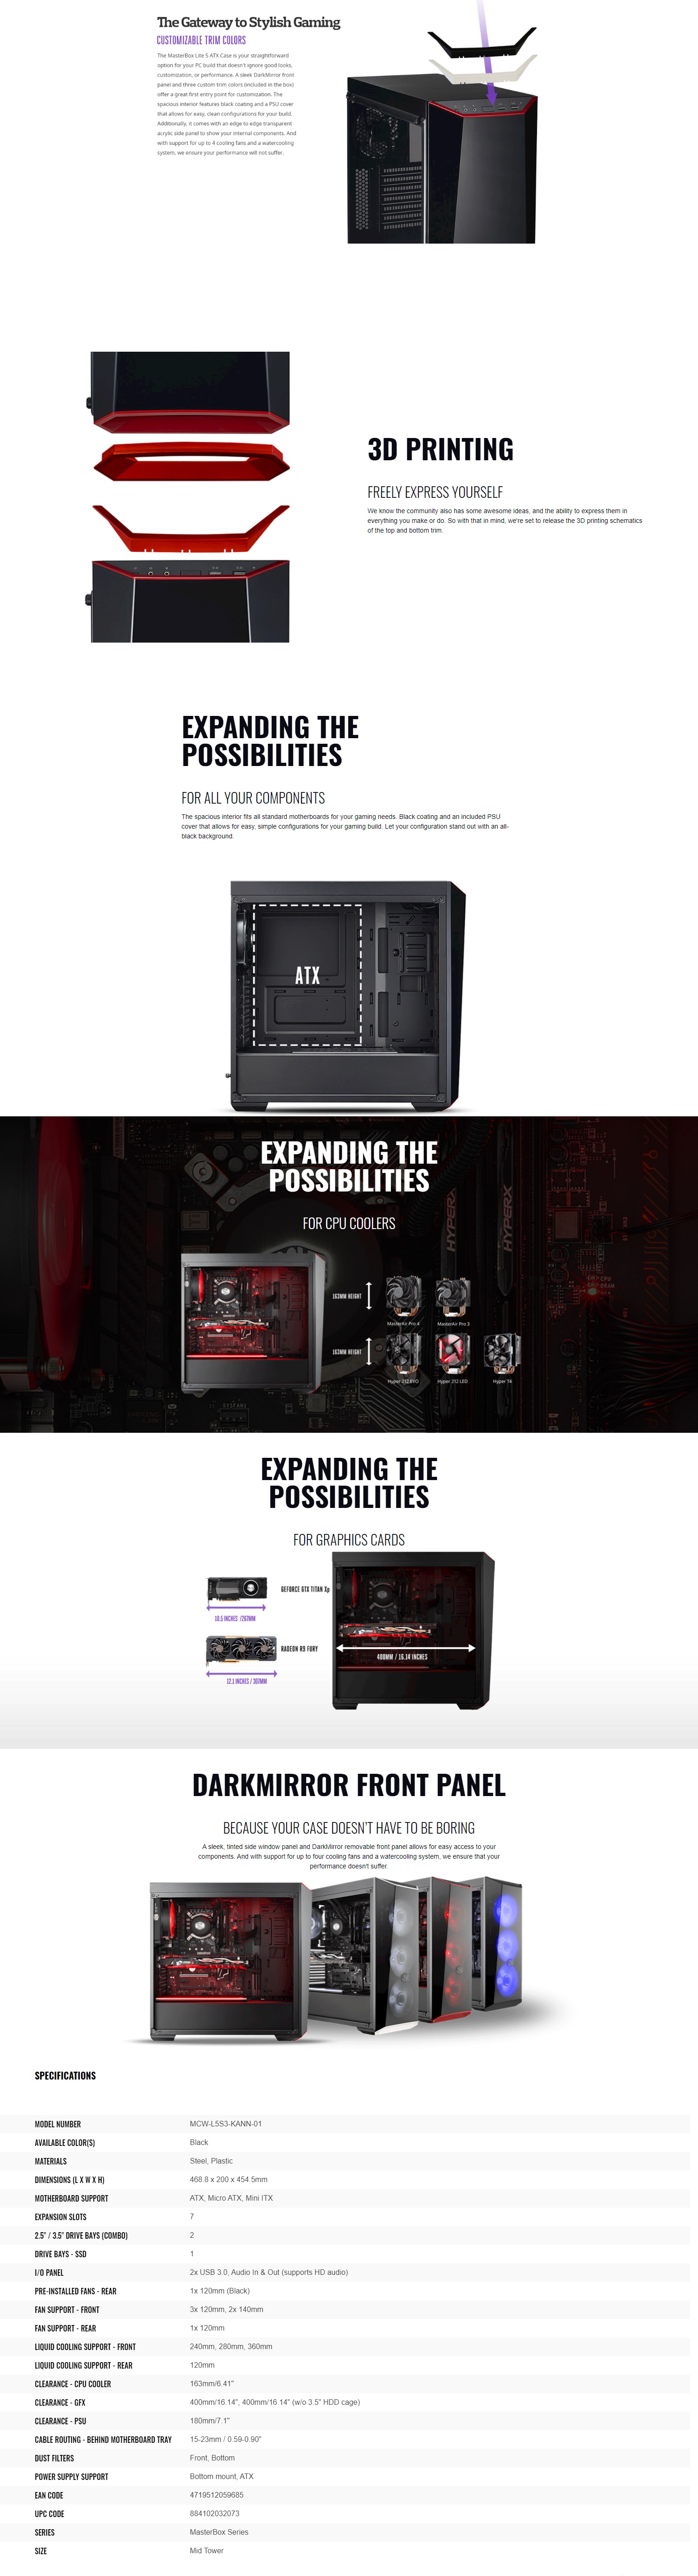 A large marketing image providing additional information about the product Cooler Master MasterBox Lite 5 Mid Tower Case w/Side Panel Window - Additional alt info not provided